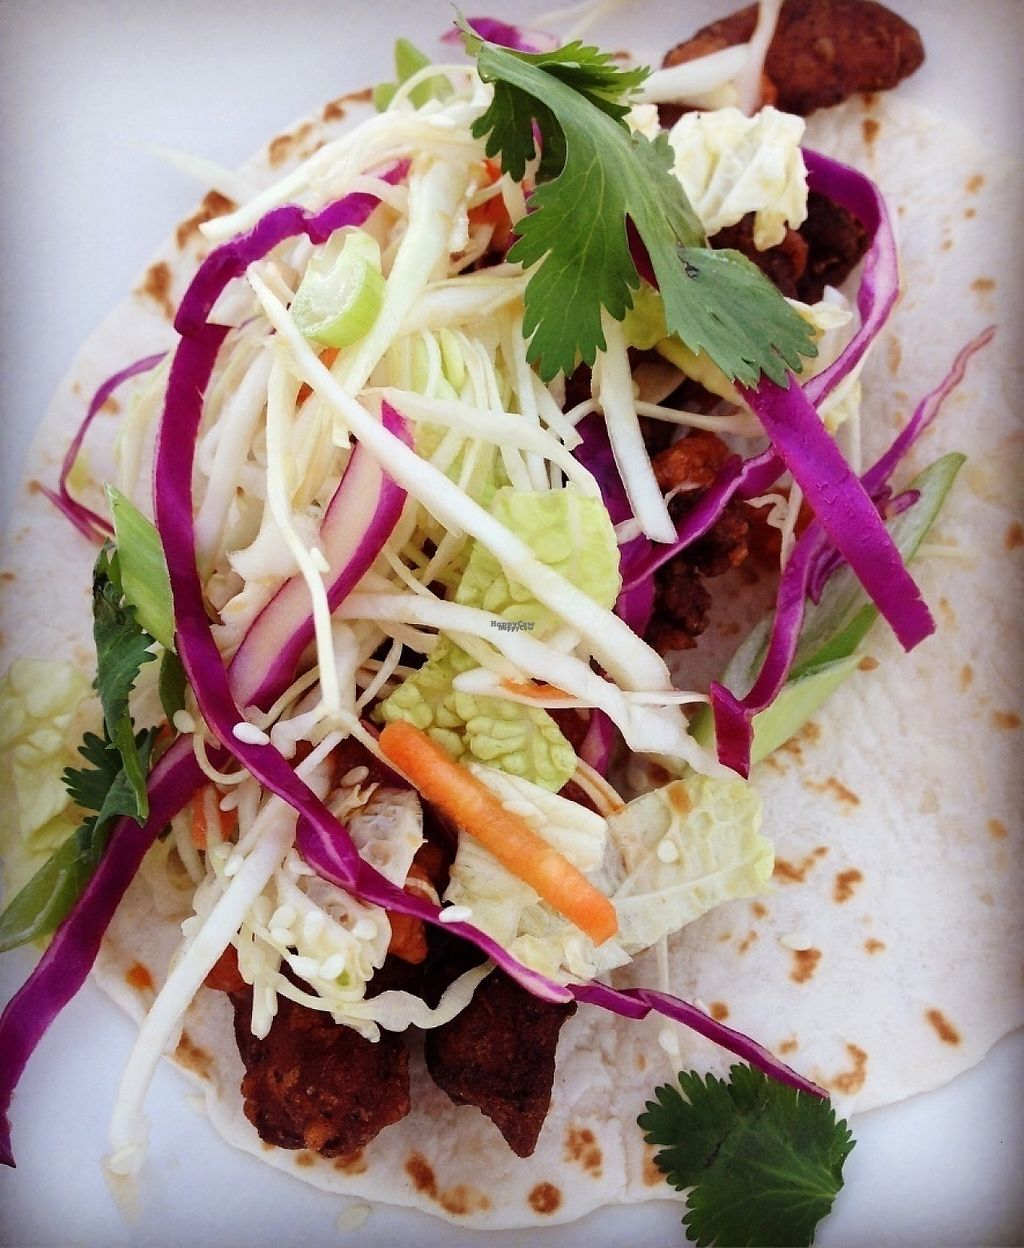 """Photo of The Great Y'all - Food Truck  by <a href=""""/members/profile/Bethdavidson"""">Bethdavidson</a> <br/>Manchurian soy curl taco <br/> March 28, 2017  - <a href='/contact/abuse/image/89363/241967'>Report</a>"""